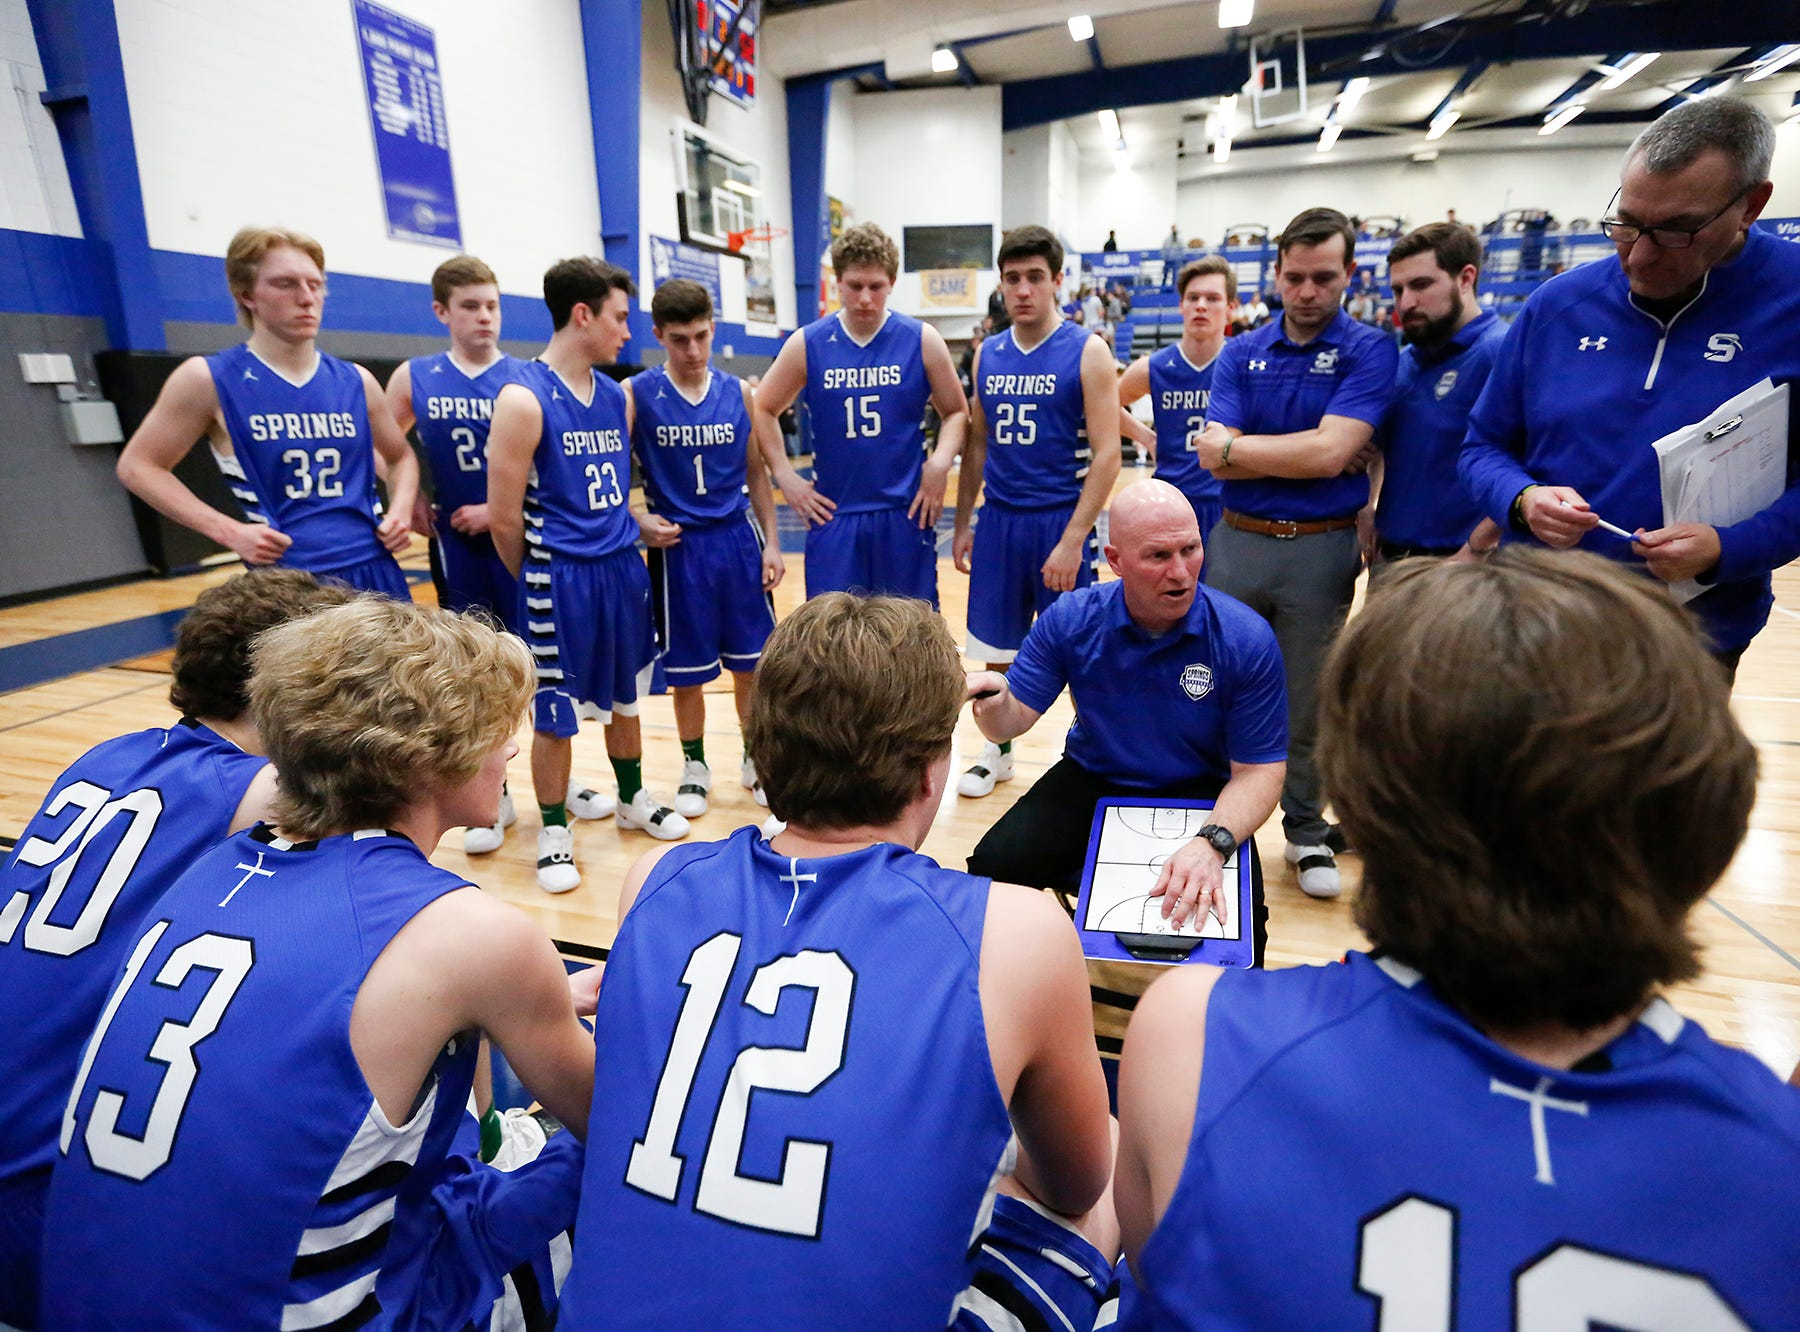 St Mary's Springs Academy boys basketball coach Kyle Krueger talks with his team during a time out from their game against Winnebago Lutheran Academy Thursday, February 21, 2019 in Fond du Lac, Wisconsin. Winnebago Lutheran Academy won the game 95-86. Doug Raflik/USA TODAY NETWORK-Wisconsin